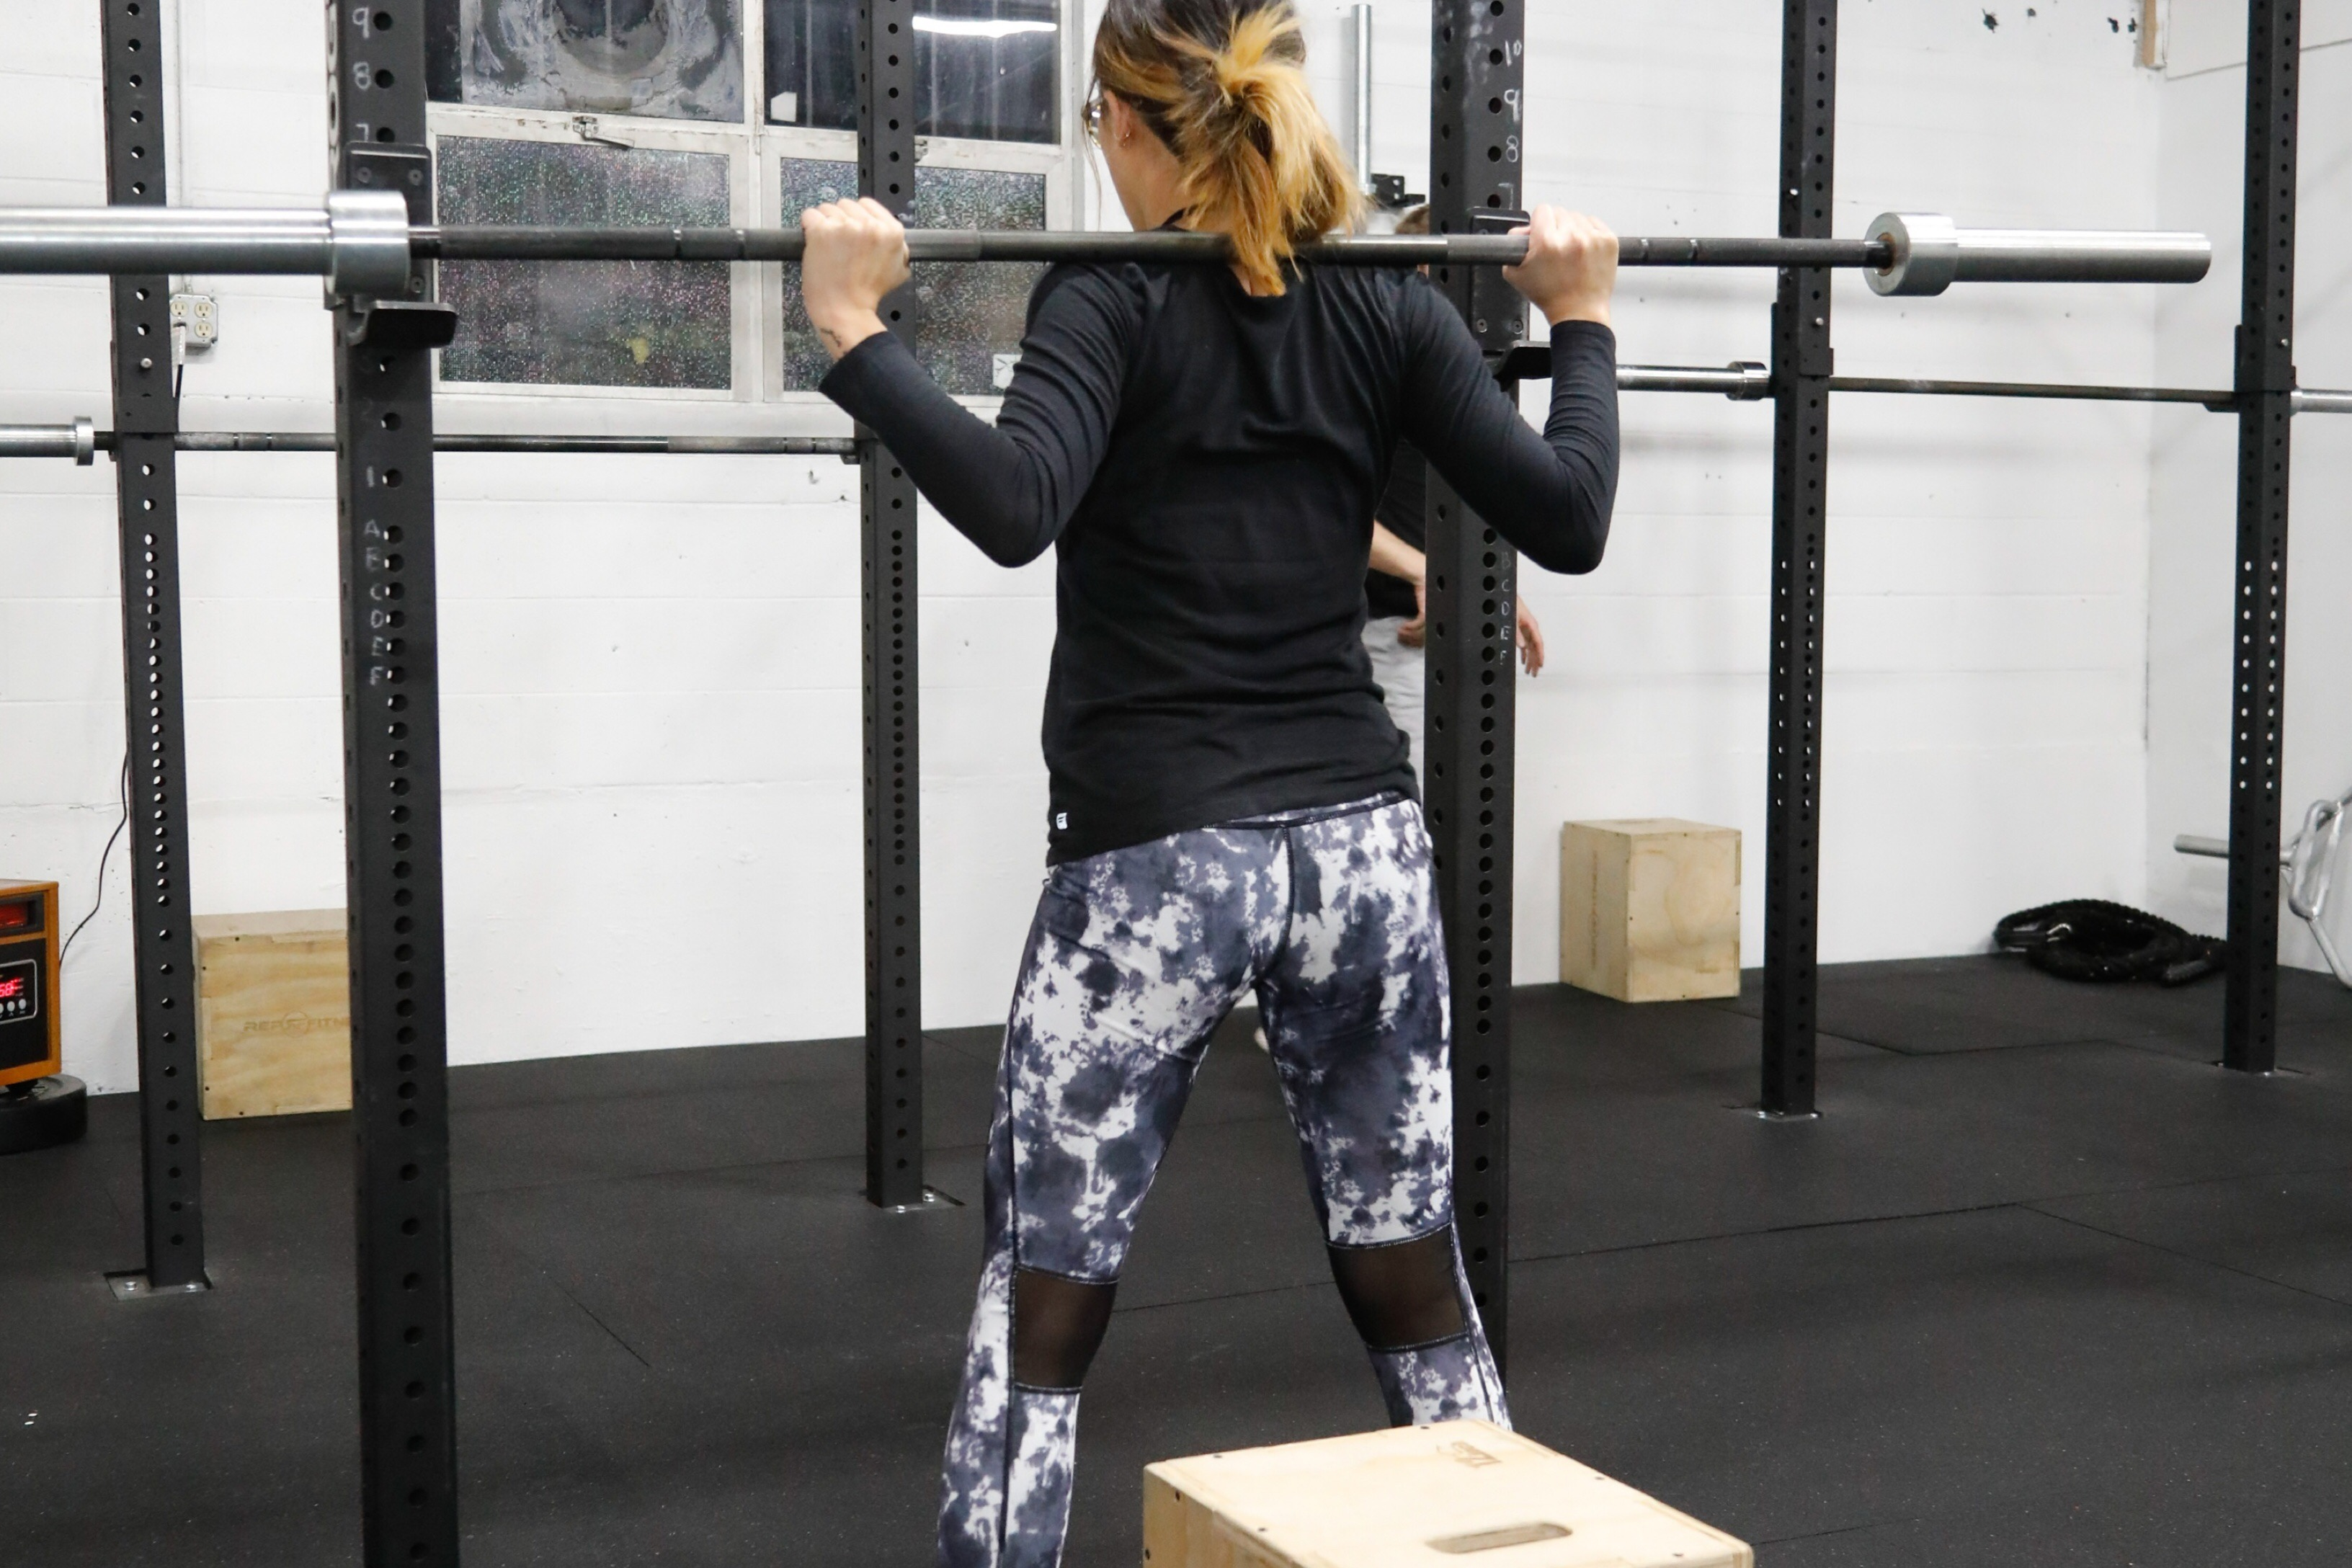 Image result for barbell weight training